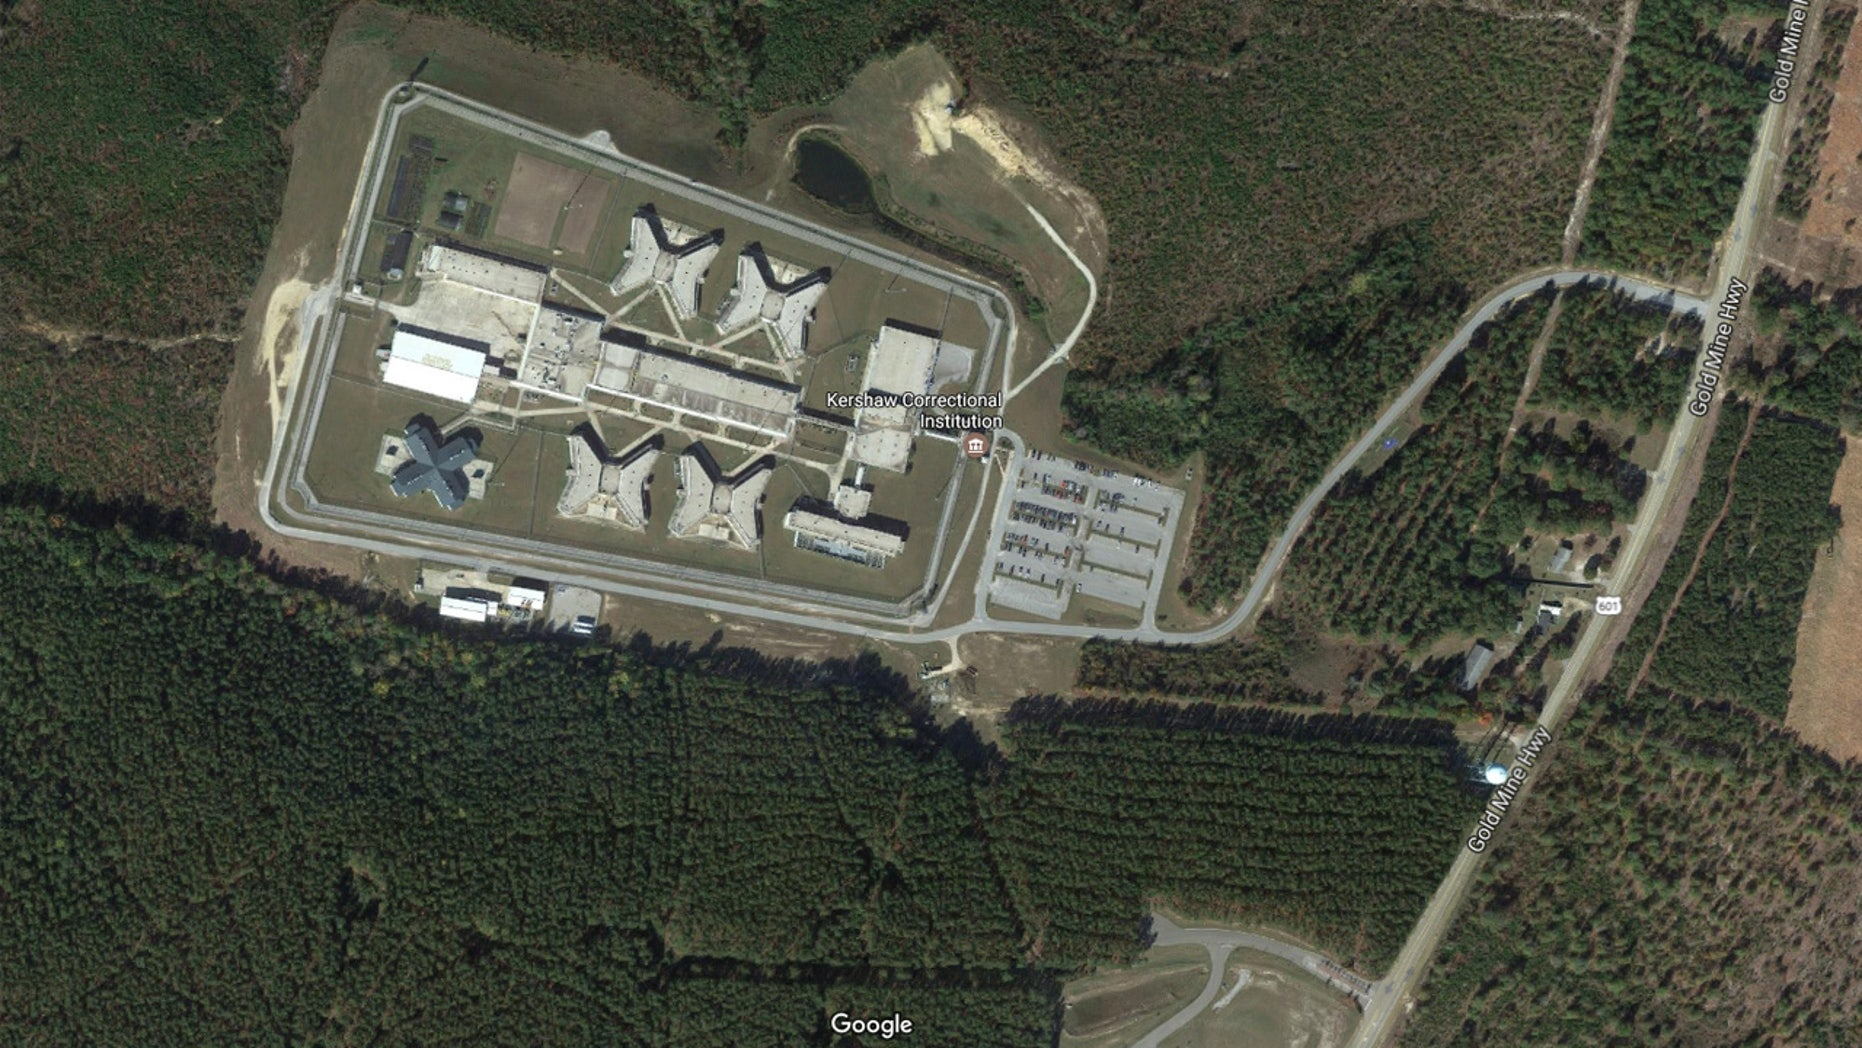 A satellite view of Kershaw Correctional Institution in South Carolina.